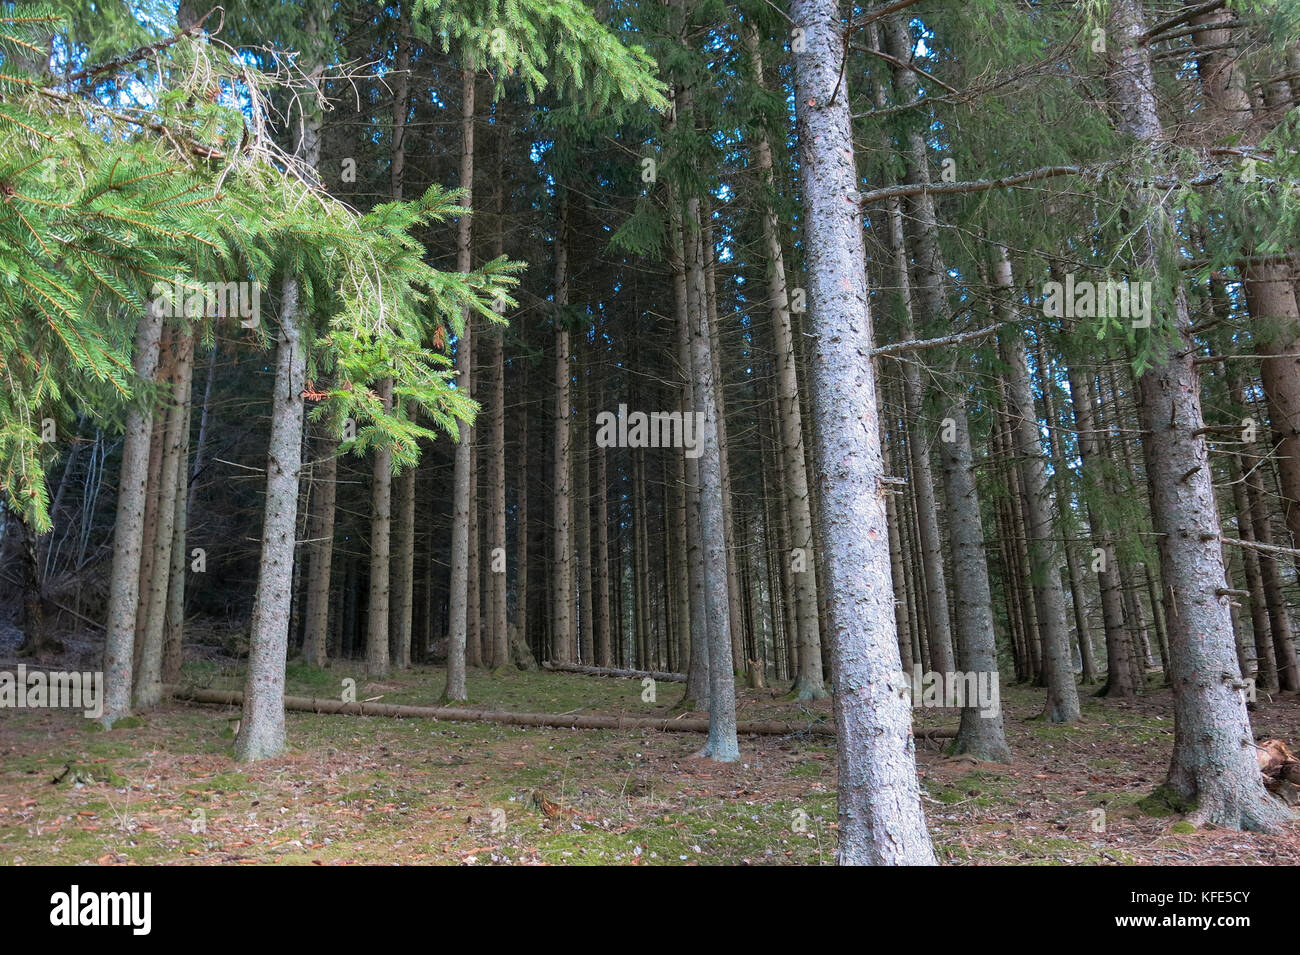 FOREST OF SPRUCE 2017 - Stock Image